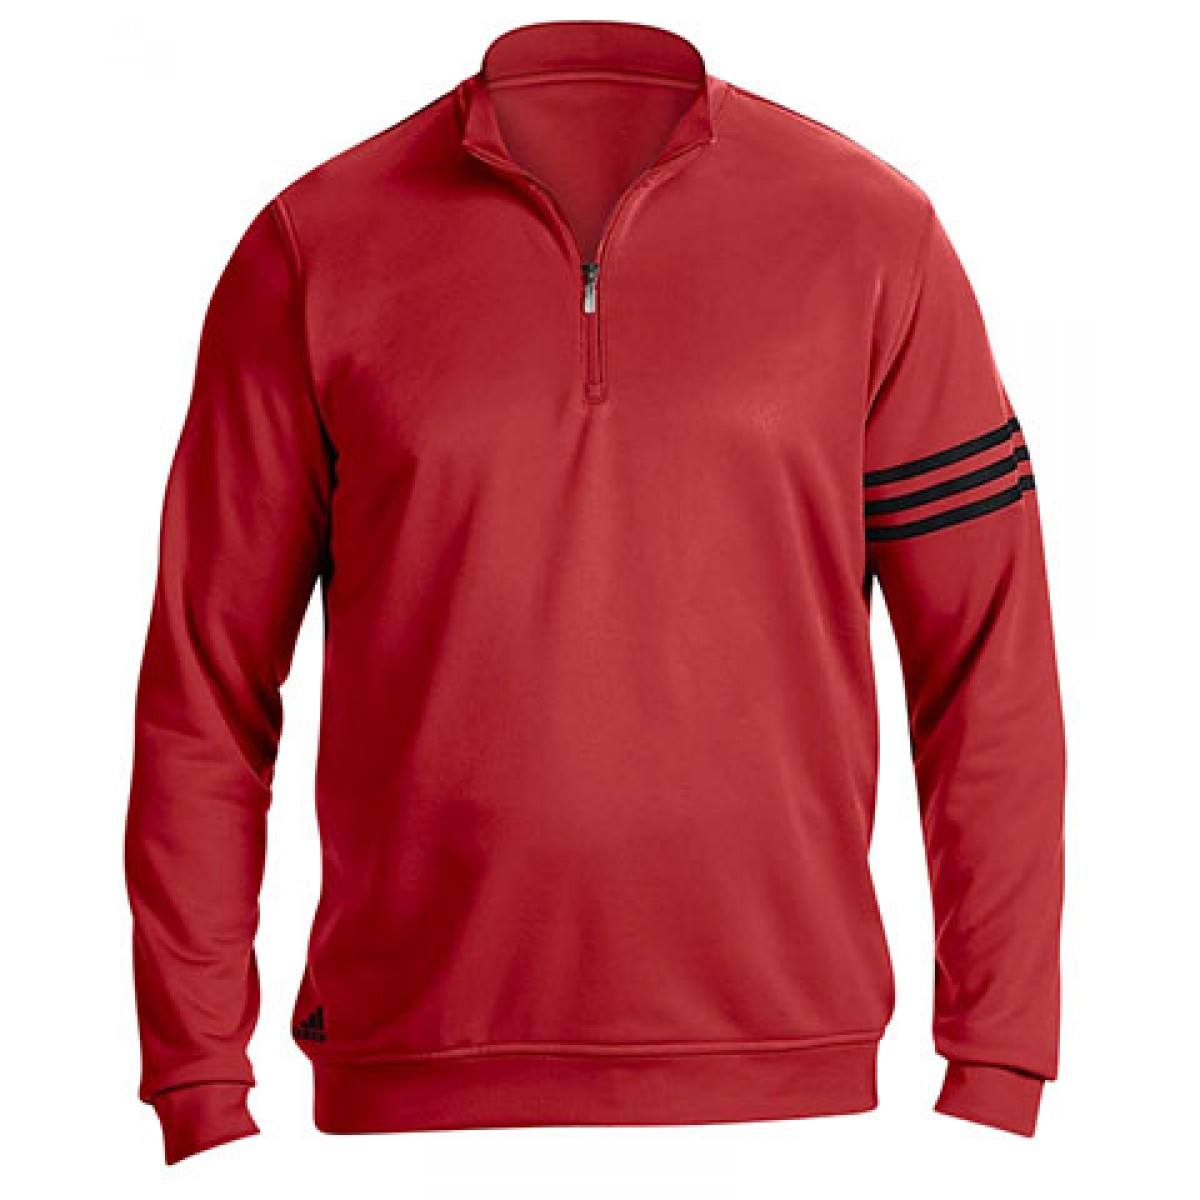 Adidas Men's 3-Stripes Pullover-Red-XL